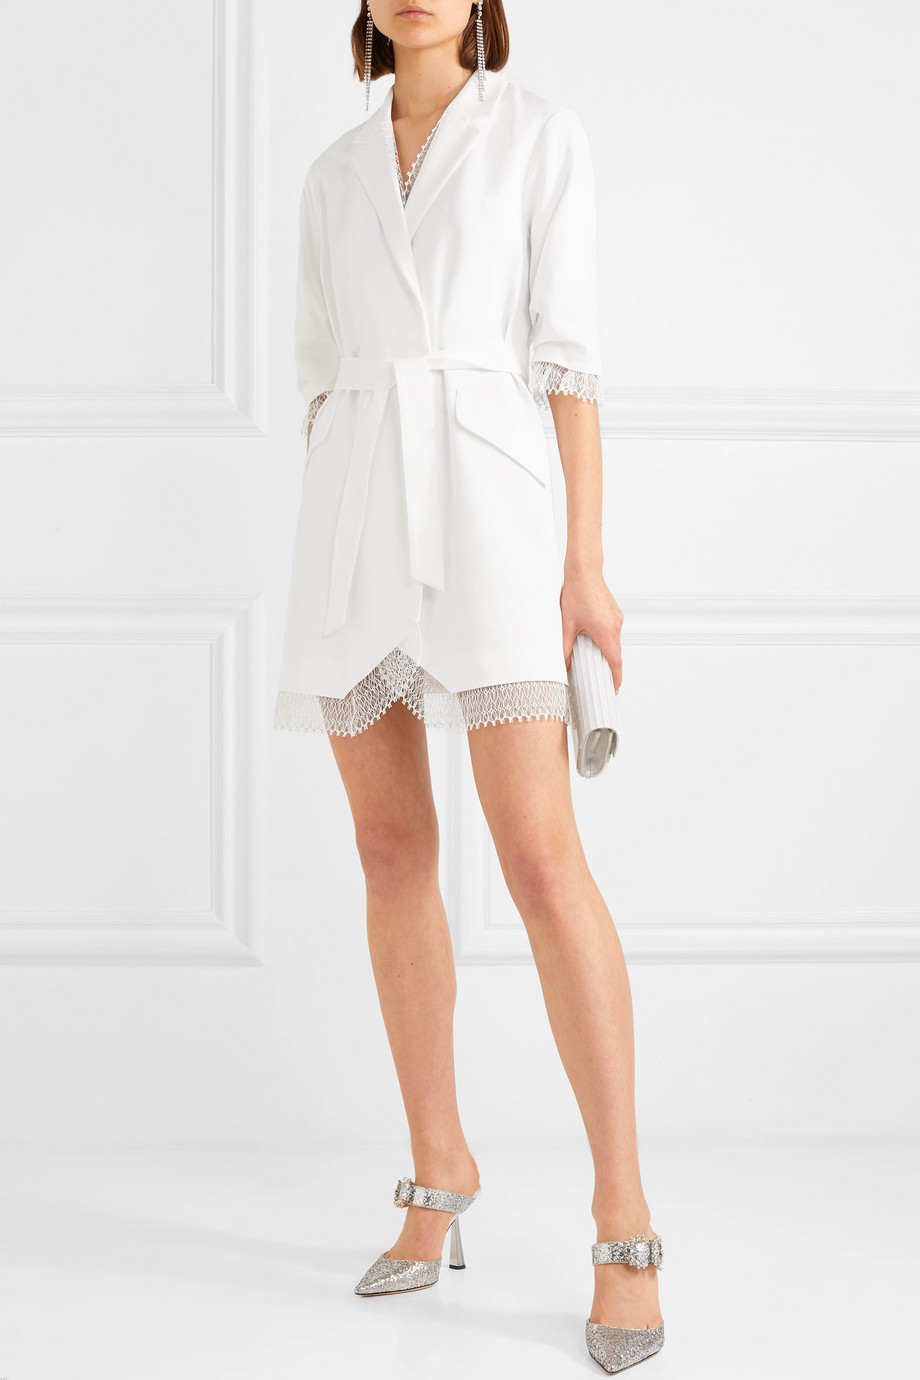 Rime Arodaky Jax belted lace-trimmed crepe mini dress